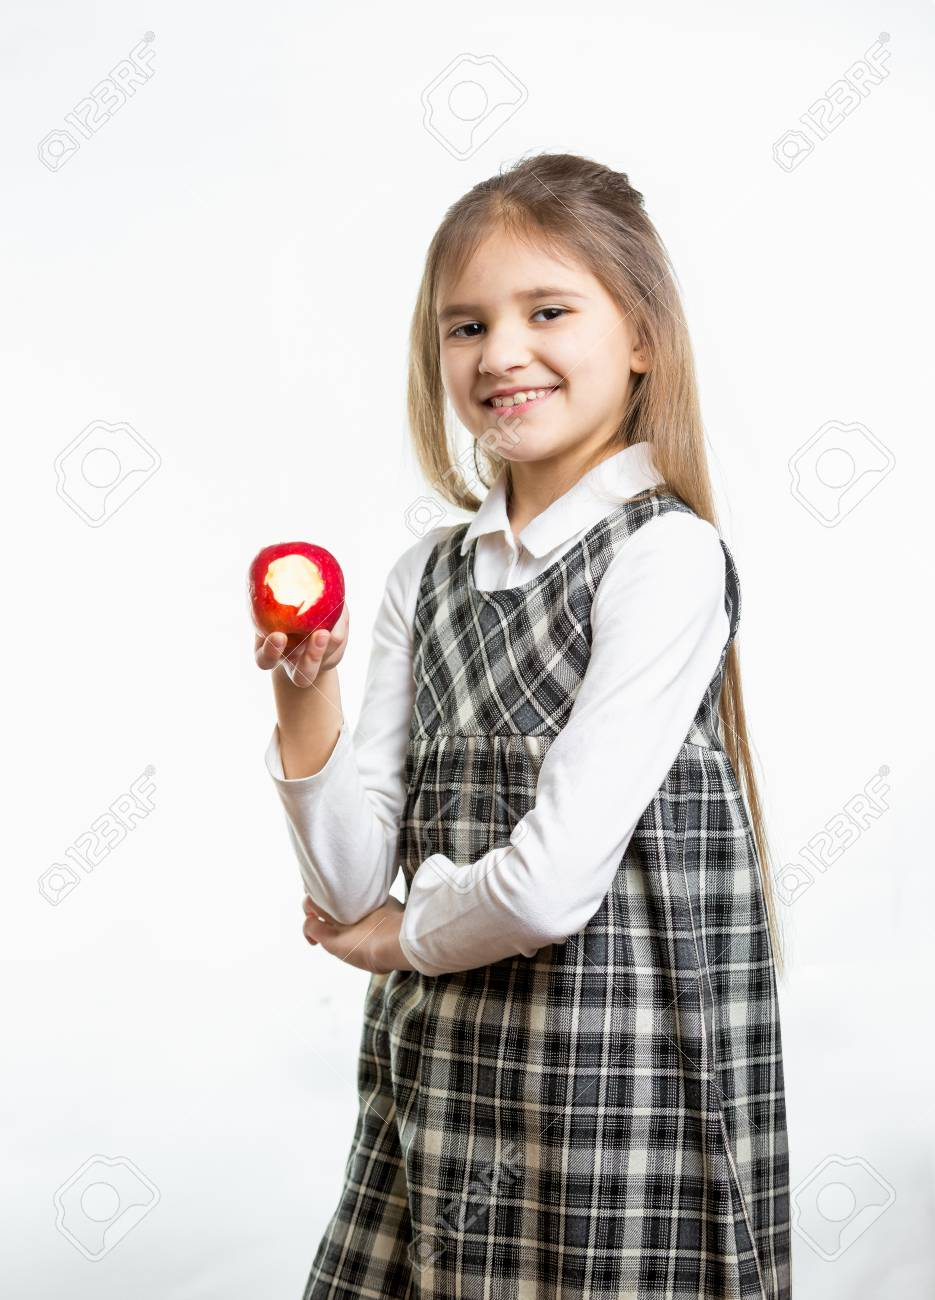 c71689d8edfc Isolated portrait of happy girl in school uniform holding red apple Stock  Photo - 41102189